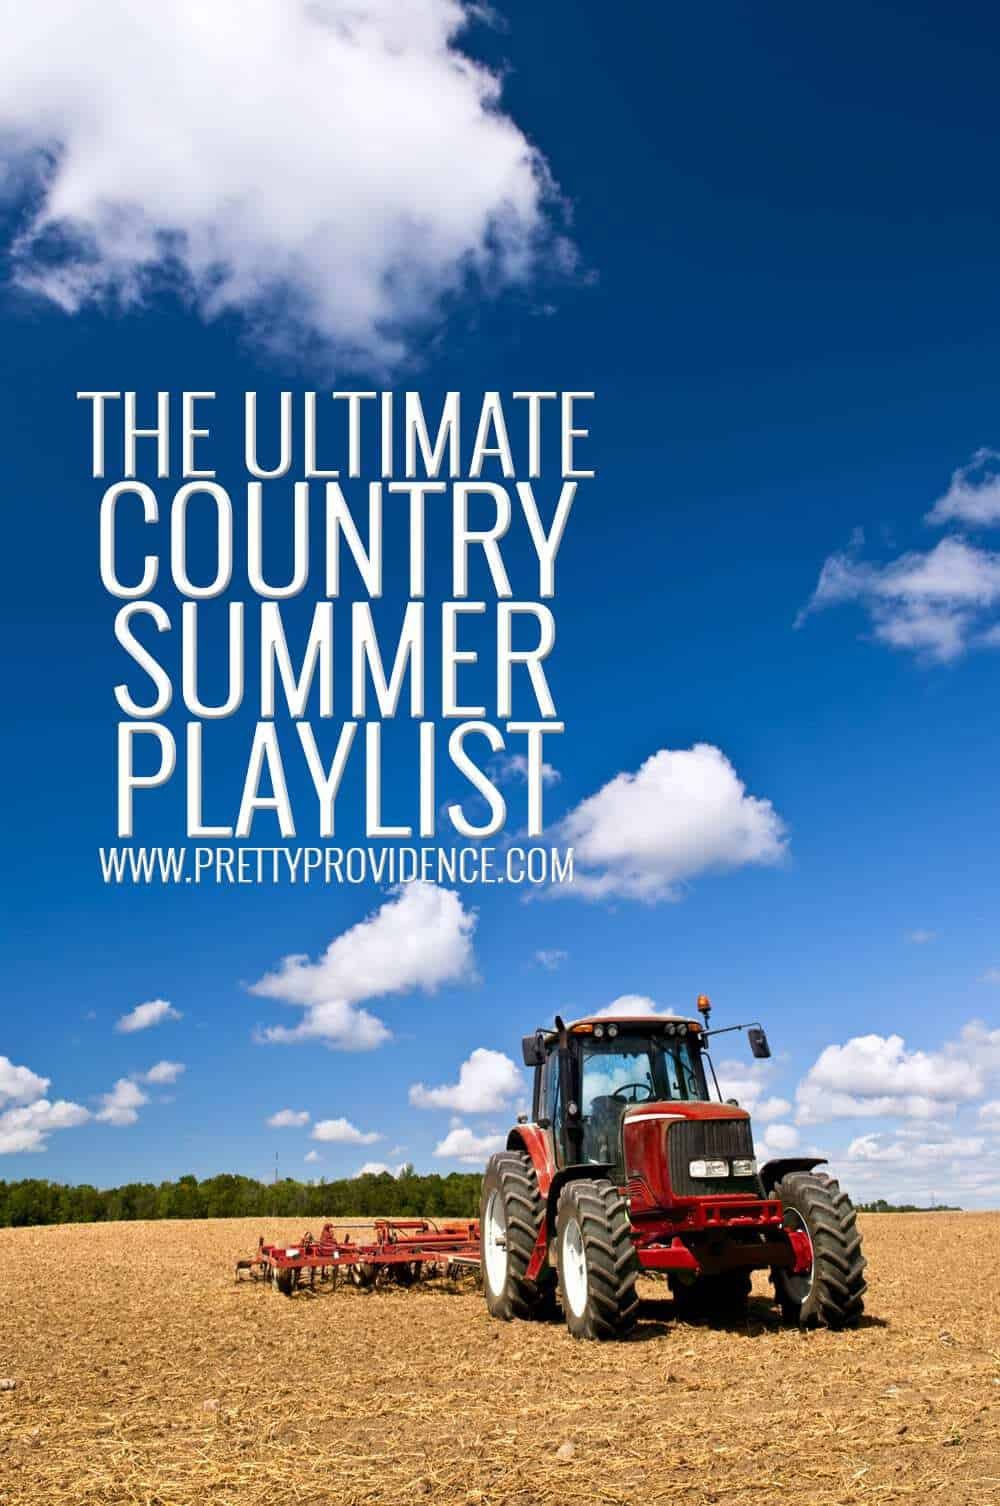 The ULTIMATE Country Summer Playlist! These songs are bound to put a smile on your face and a skip in your step! Literally turns my bad days around when I turn it on!